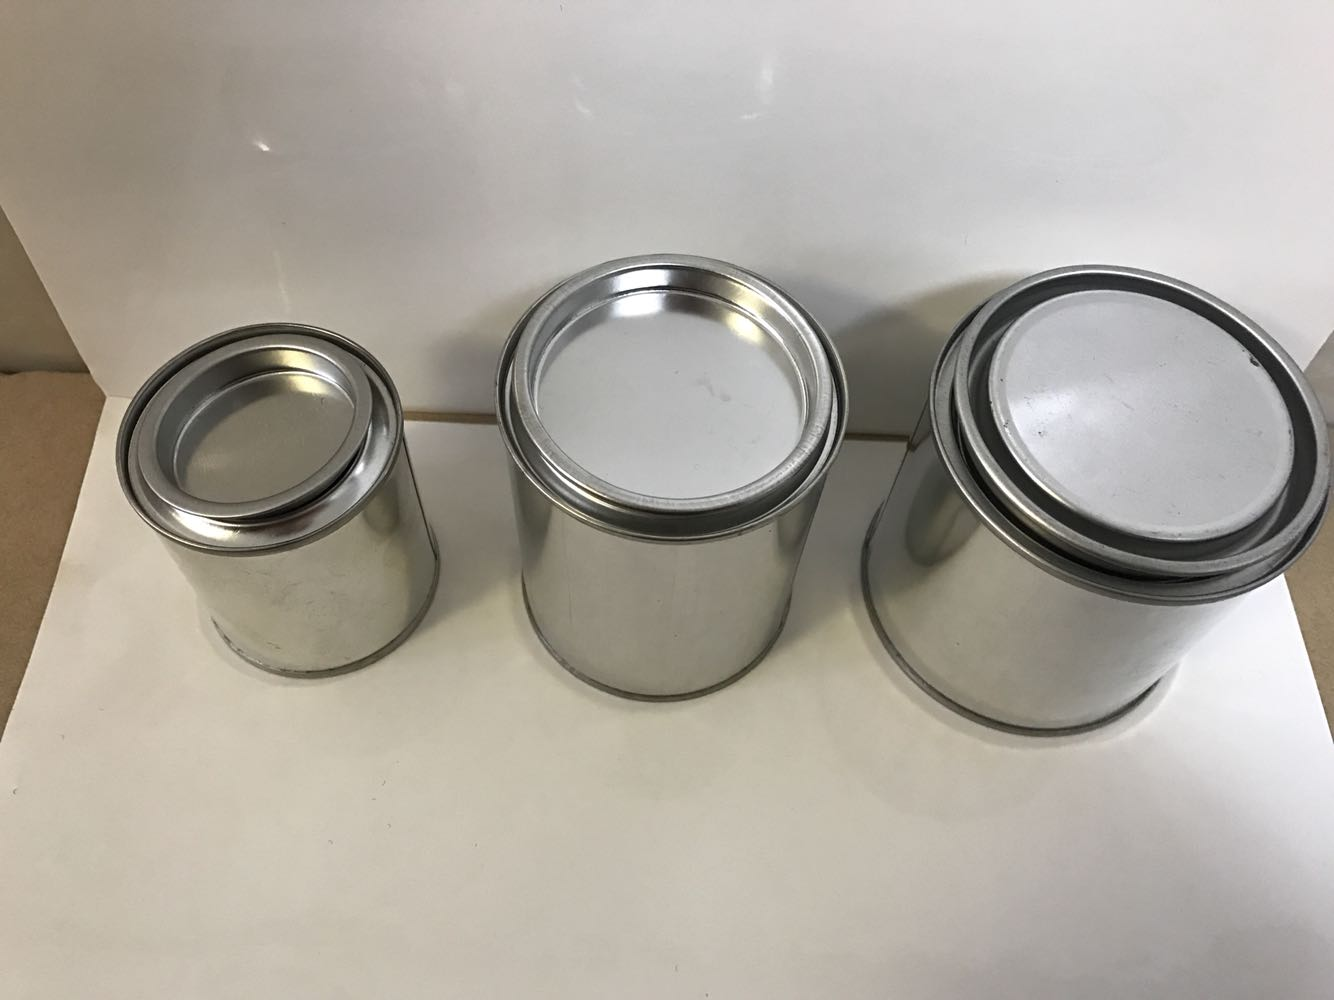 sample cans, metal can for samples